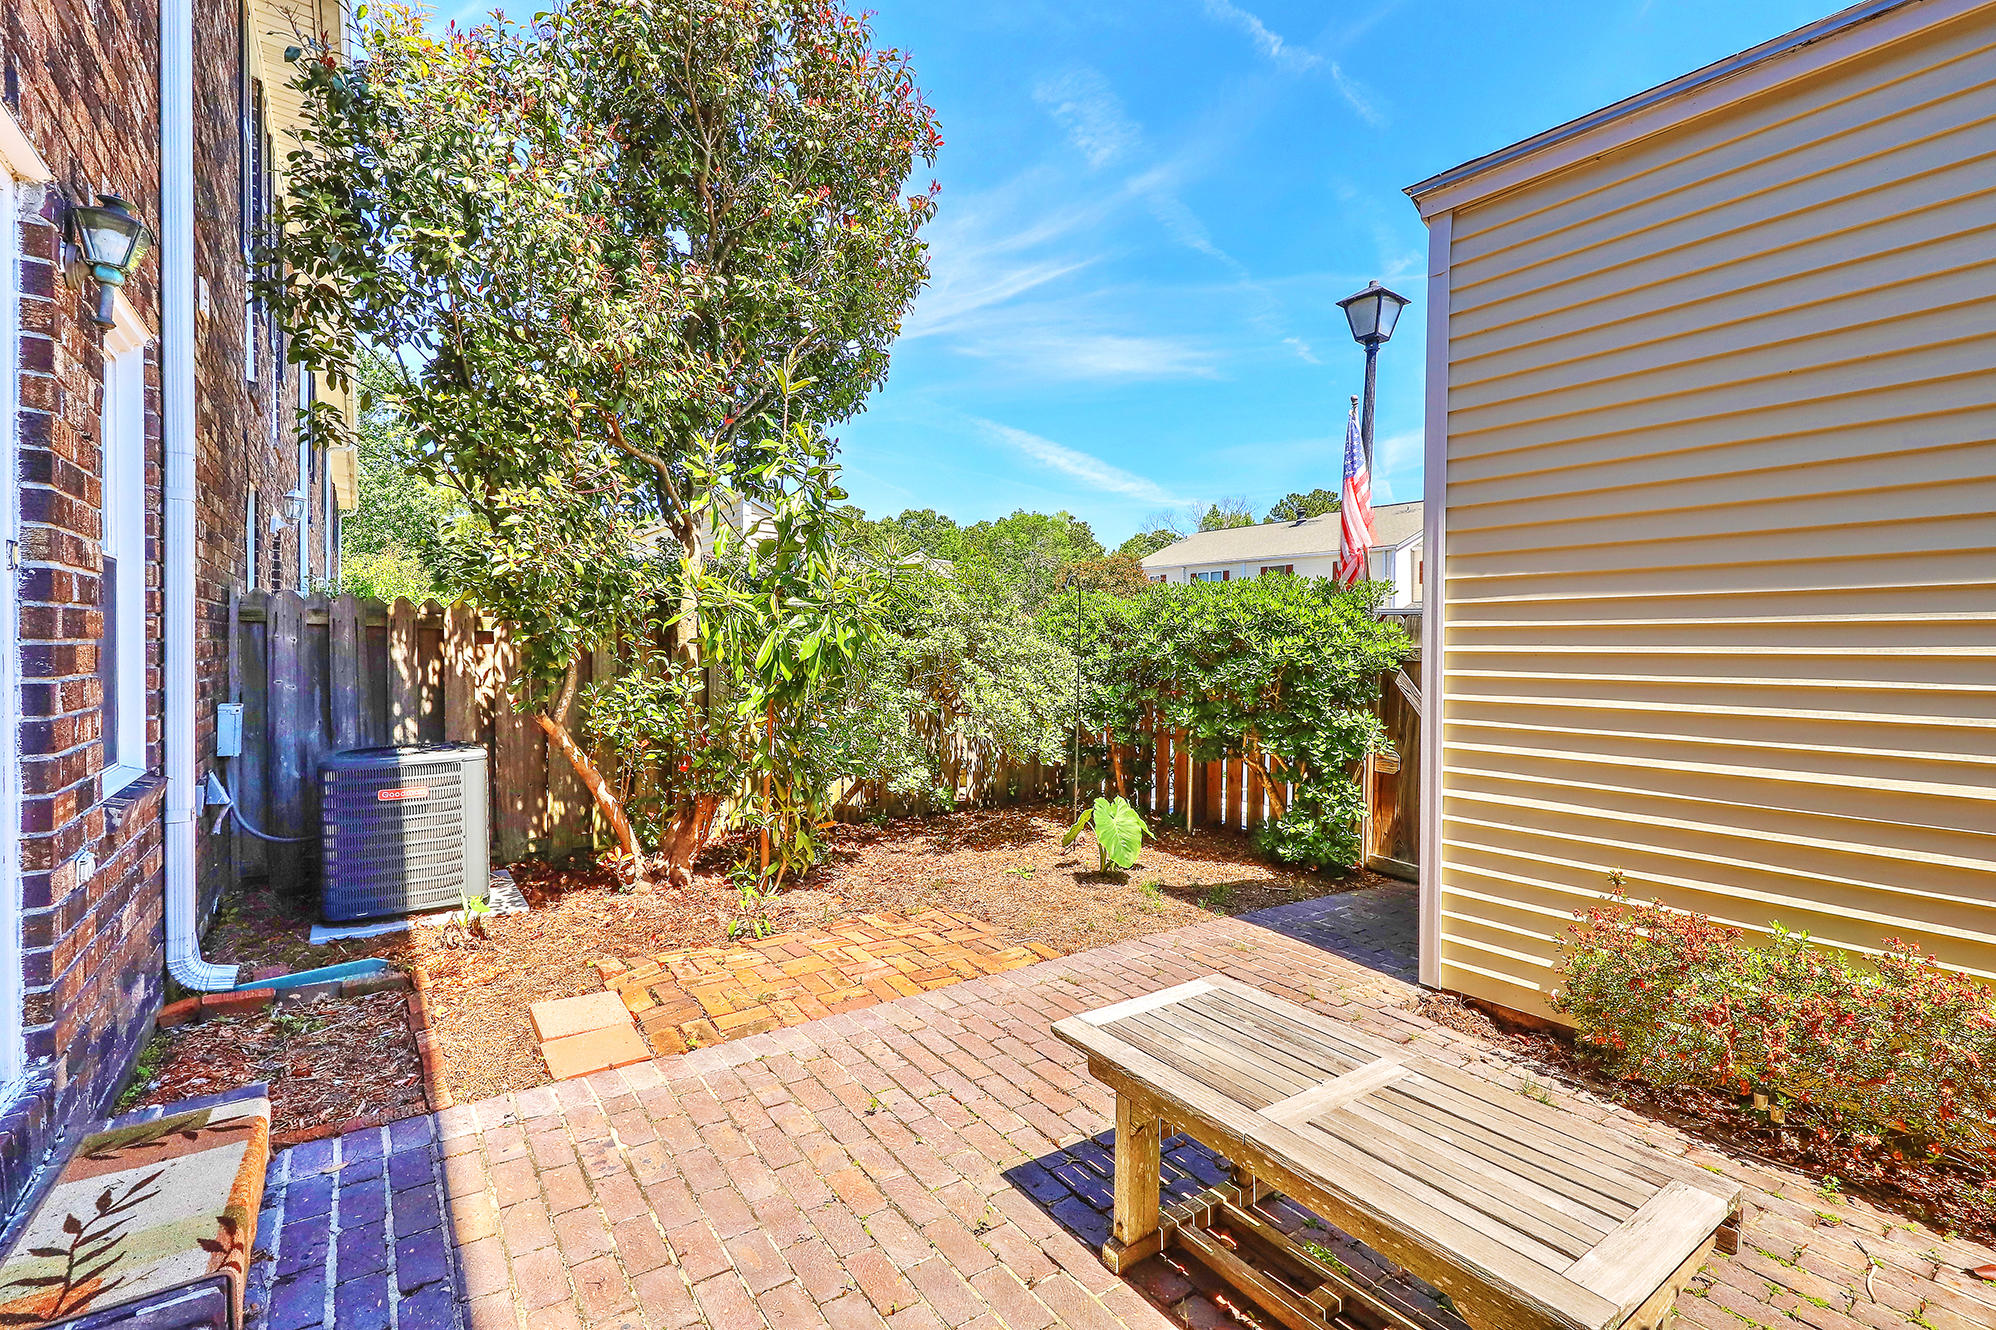 Old Towne Villas Homes For Sale - 2921 Cathedral, Charleston, SC - 10